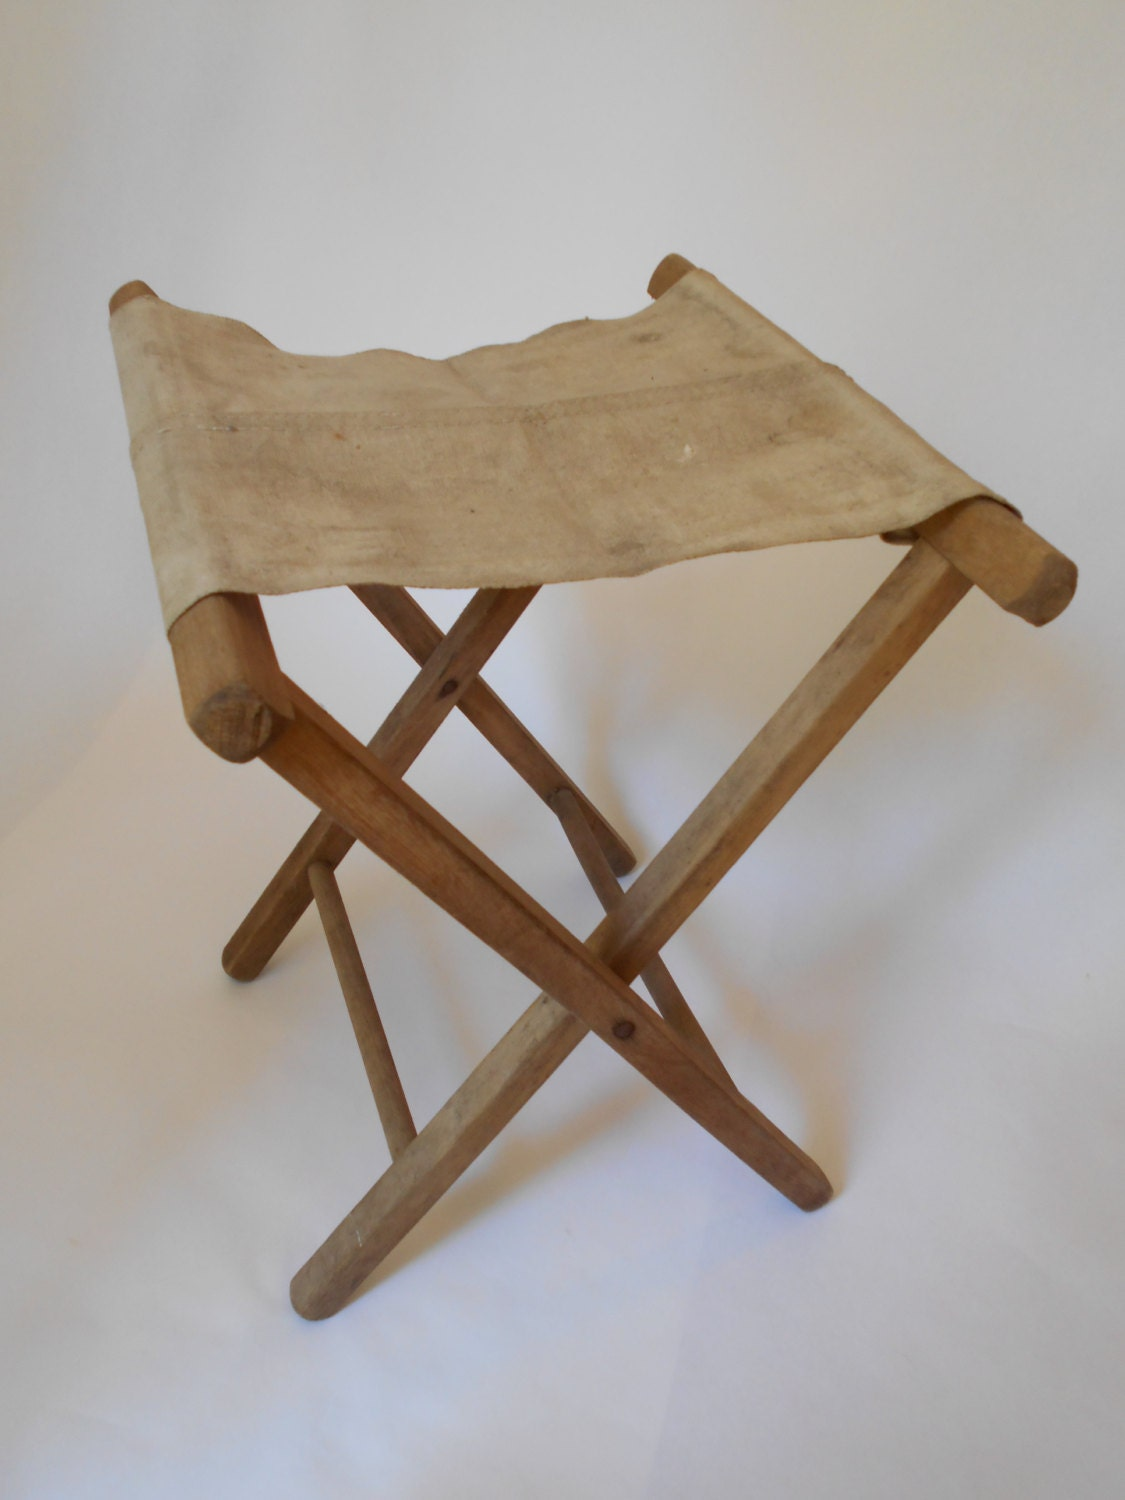 Brilliant Vintage Wood And Canvas Folding Camp Stool Or Luggage Rack Bralicious Painted Fabric Chair Ideas Braliciousco